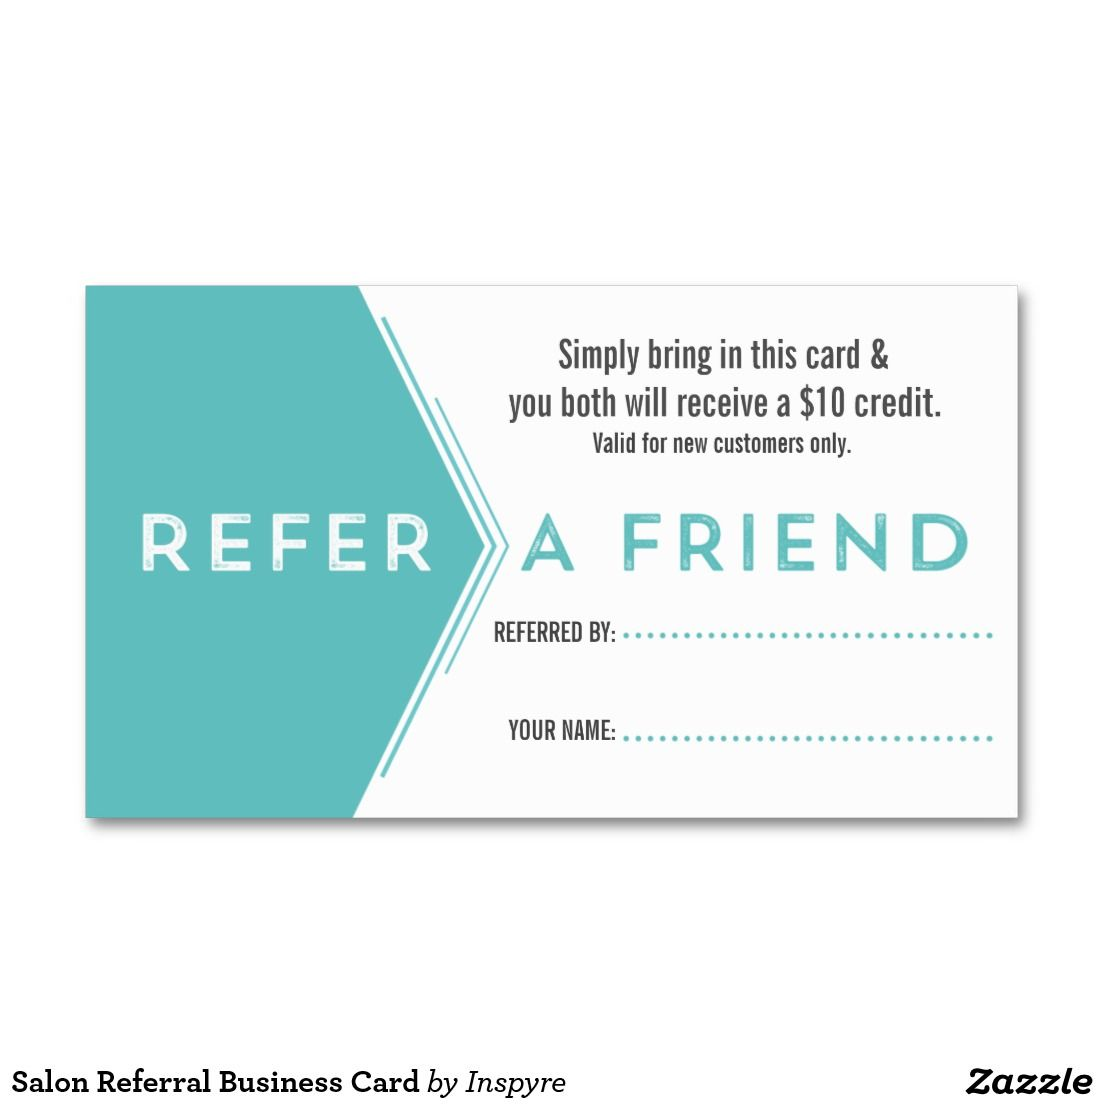 Salon Referral Business Card By Inspyre Design  Refer A Friend